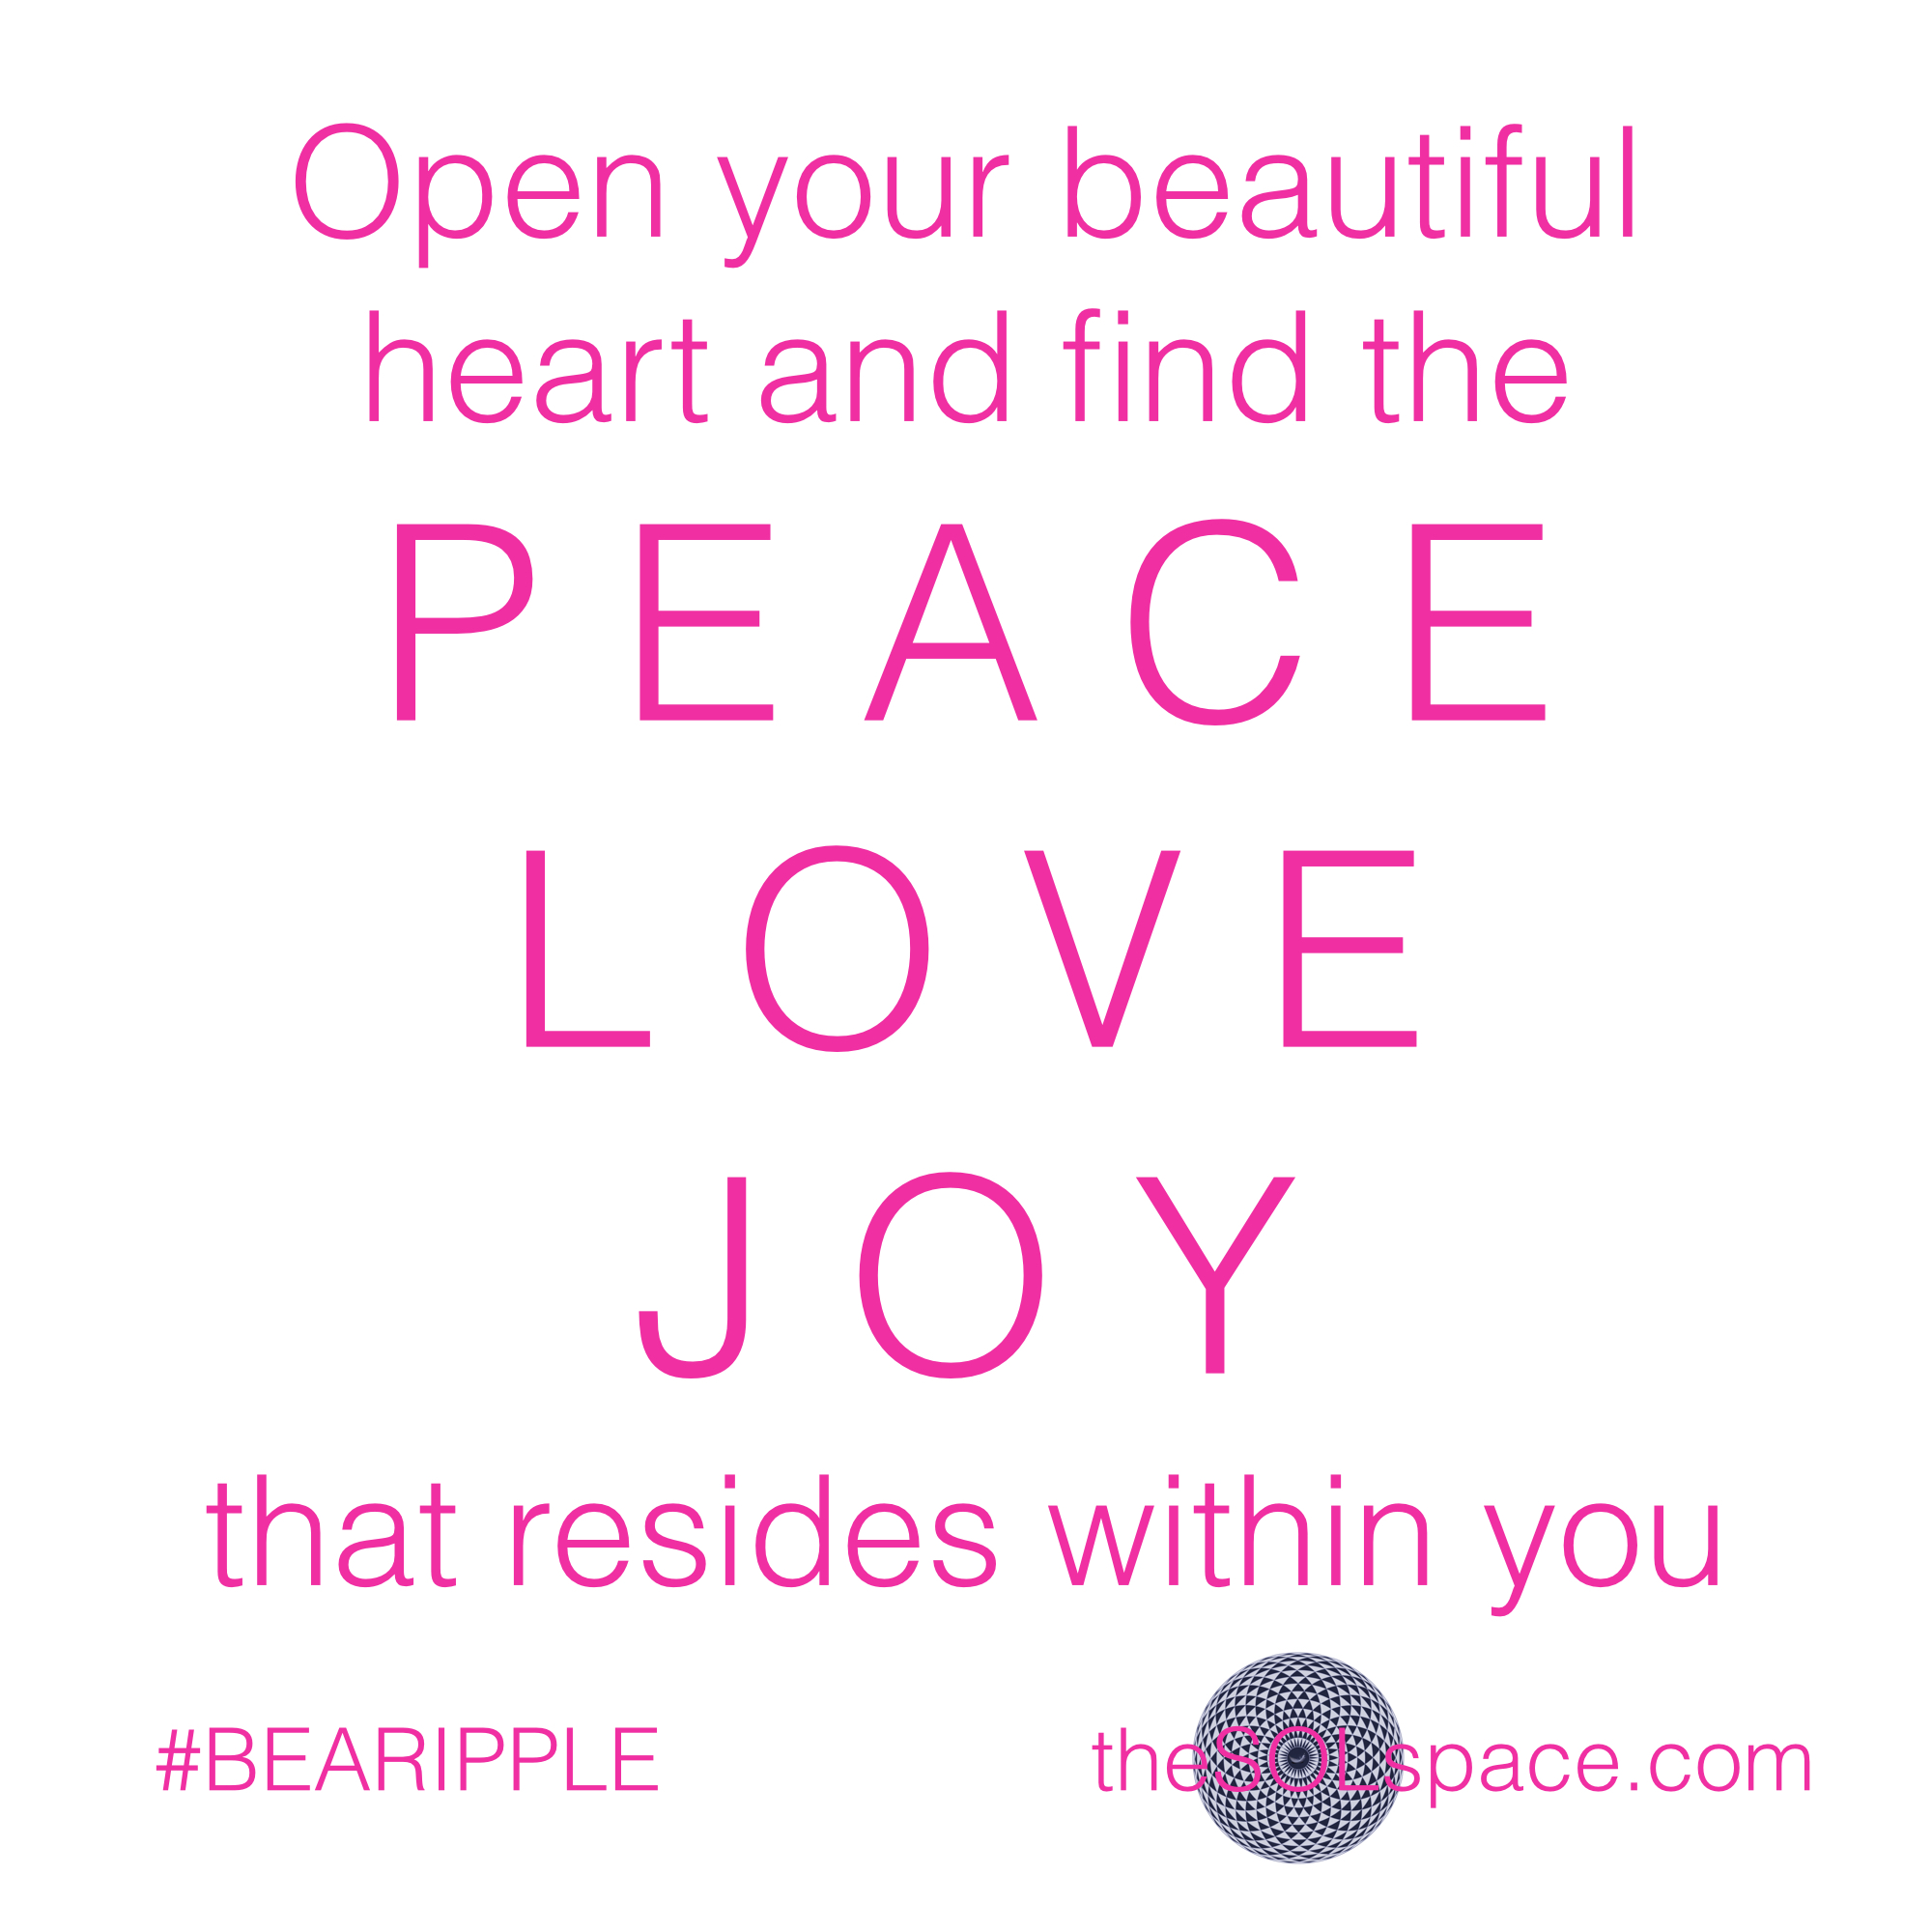 #BeARipple..Open your beautiful heart & find the peace, love, joy that resides within you @theSOLspace